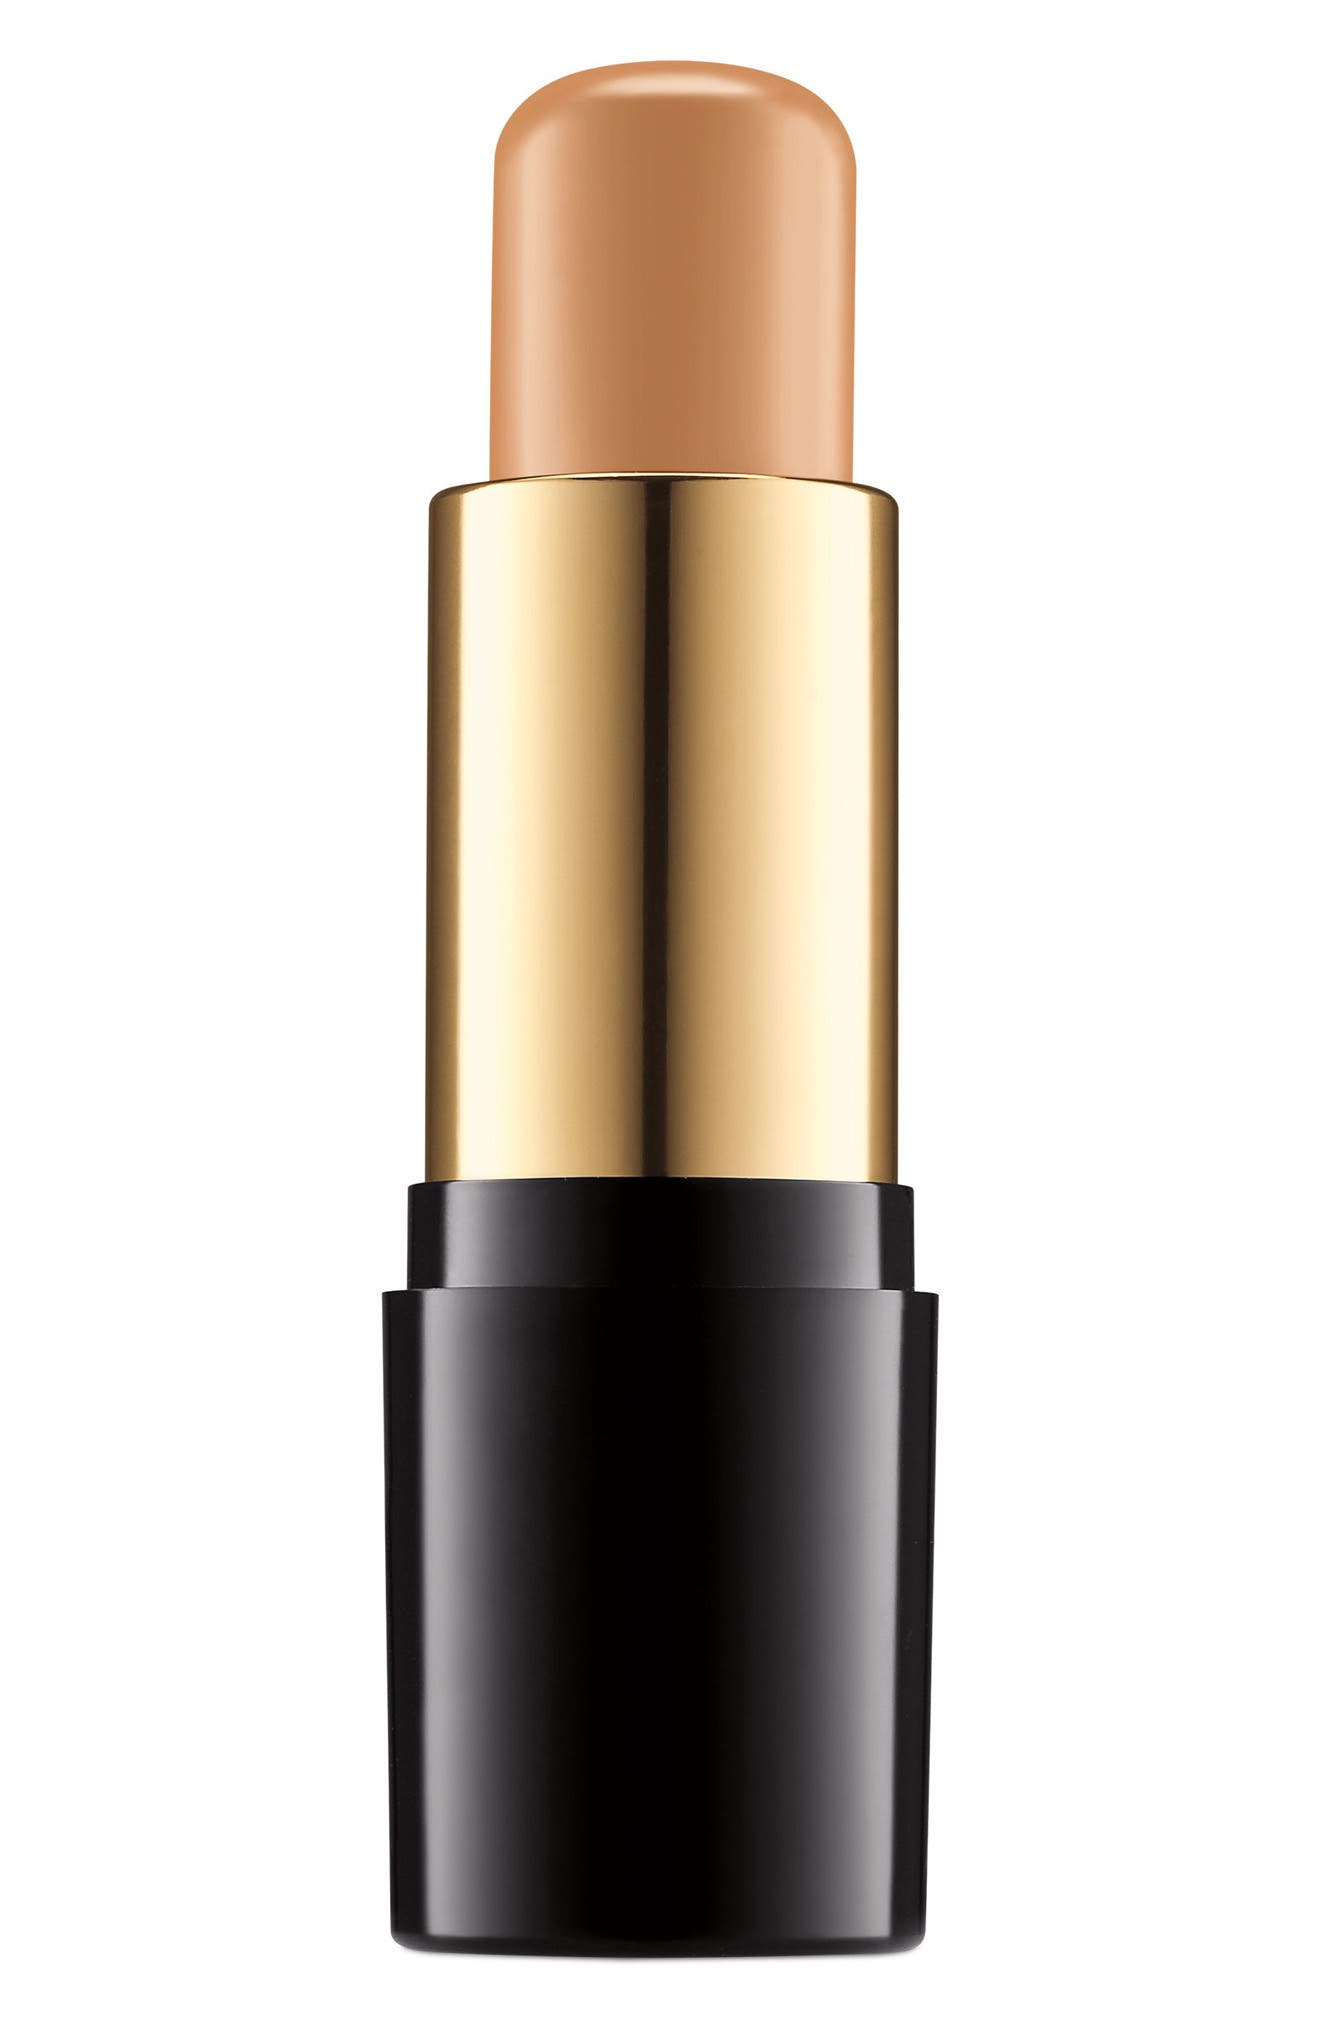 Teint Idole Ultra 24H Foundation Stick Broad Spectrum SPF 21,                         Main,                         color, 415 Bisque W